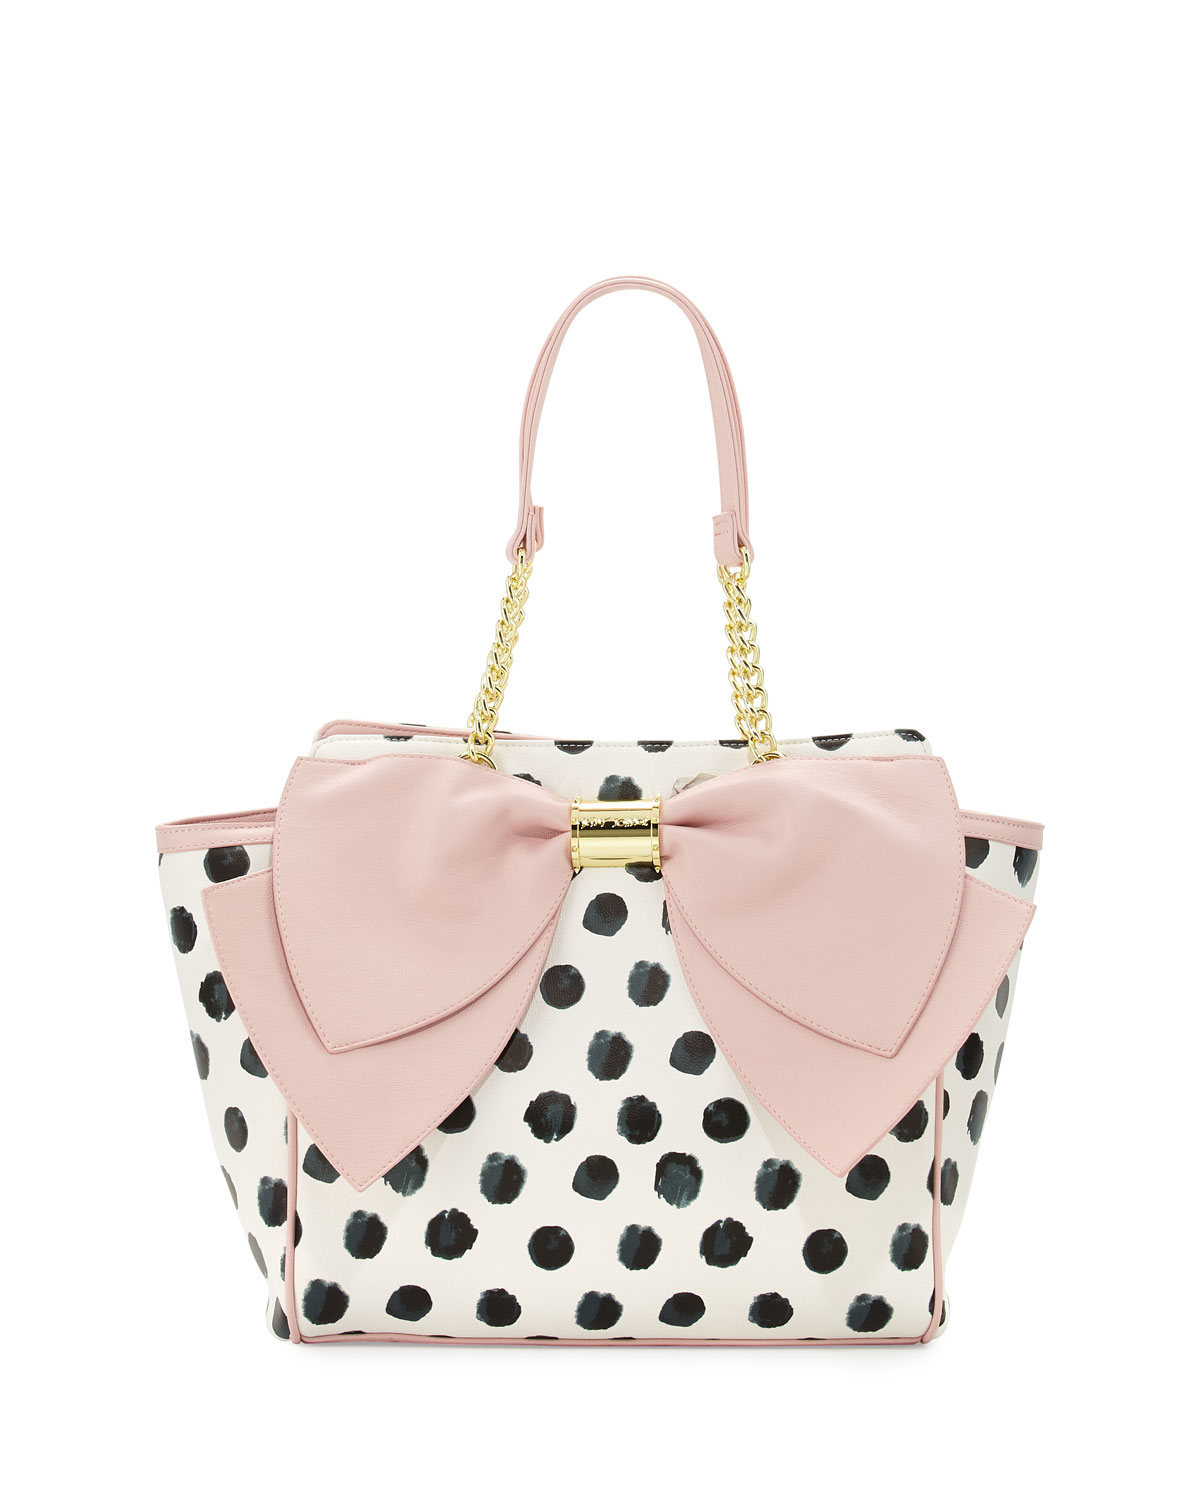 65b0a366e8 Lyst - Betsey Johnson Signature Bow Polka-dot Tote Bag in Black